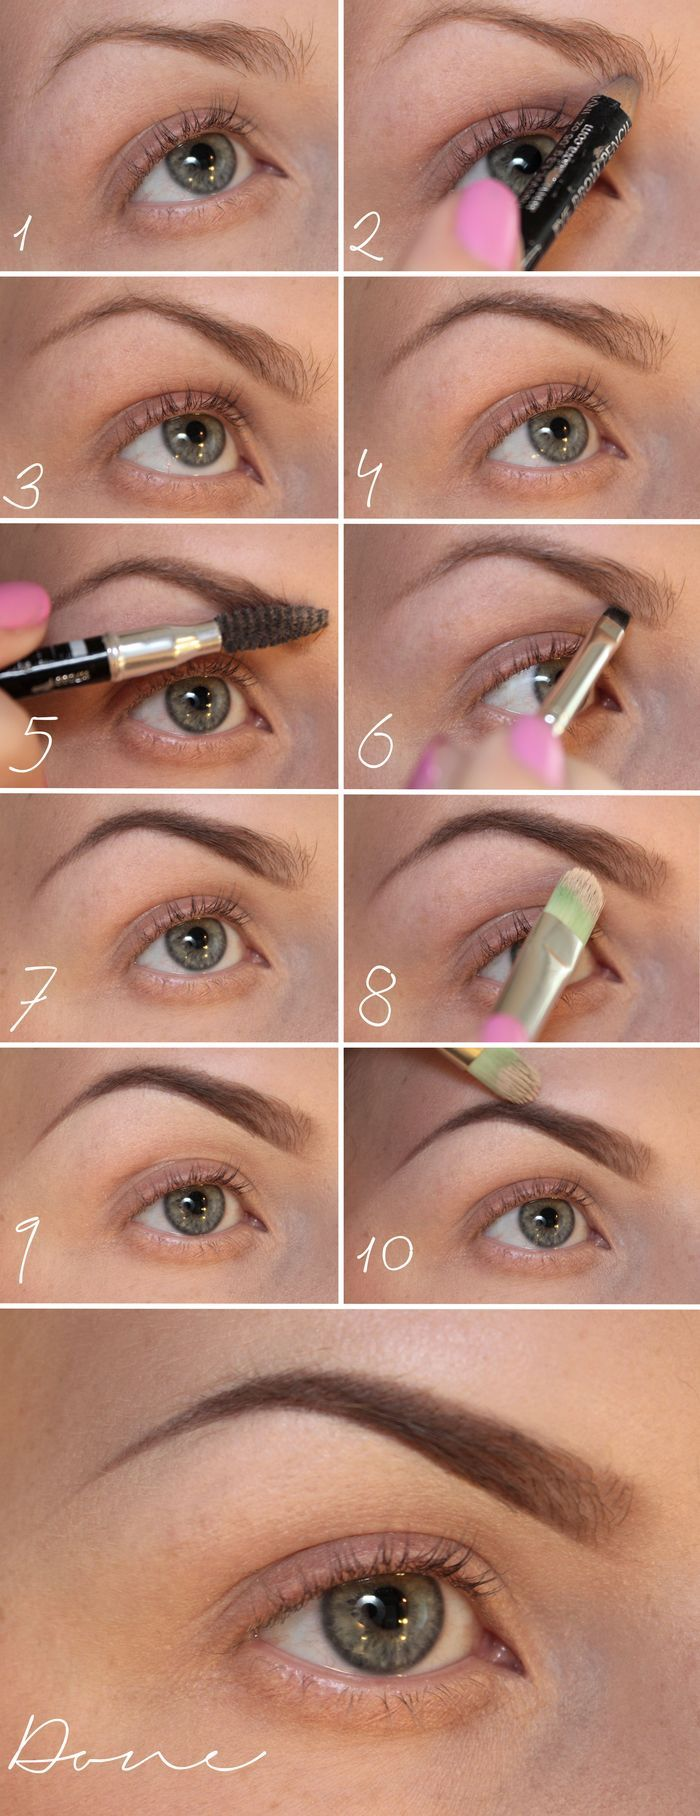 Brow Tutorial - Not in English, but the pictures are very helpful! >> by Psycho Sandra